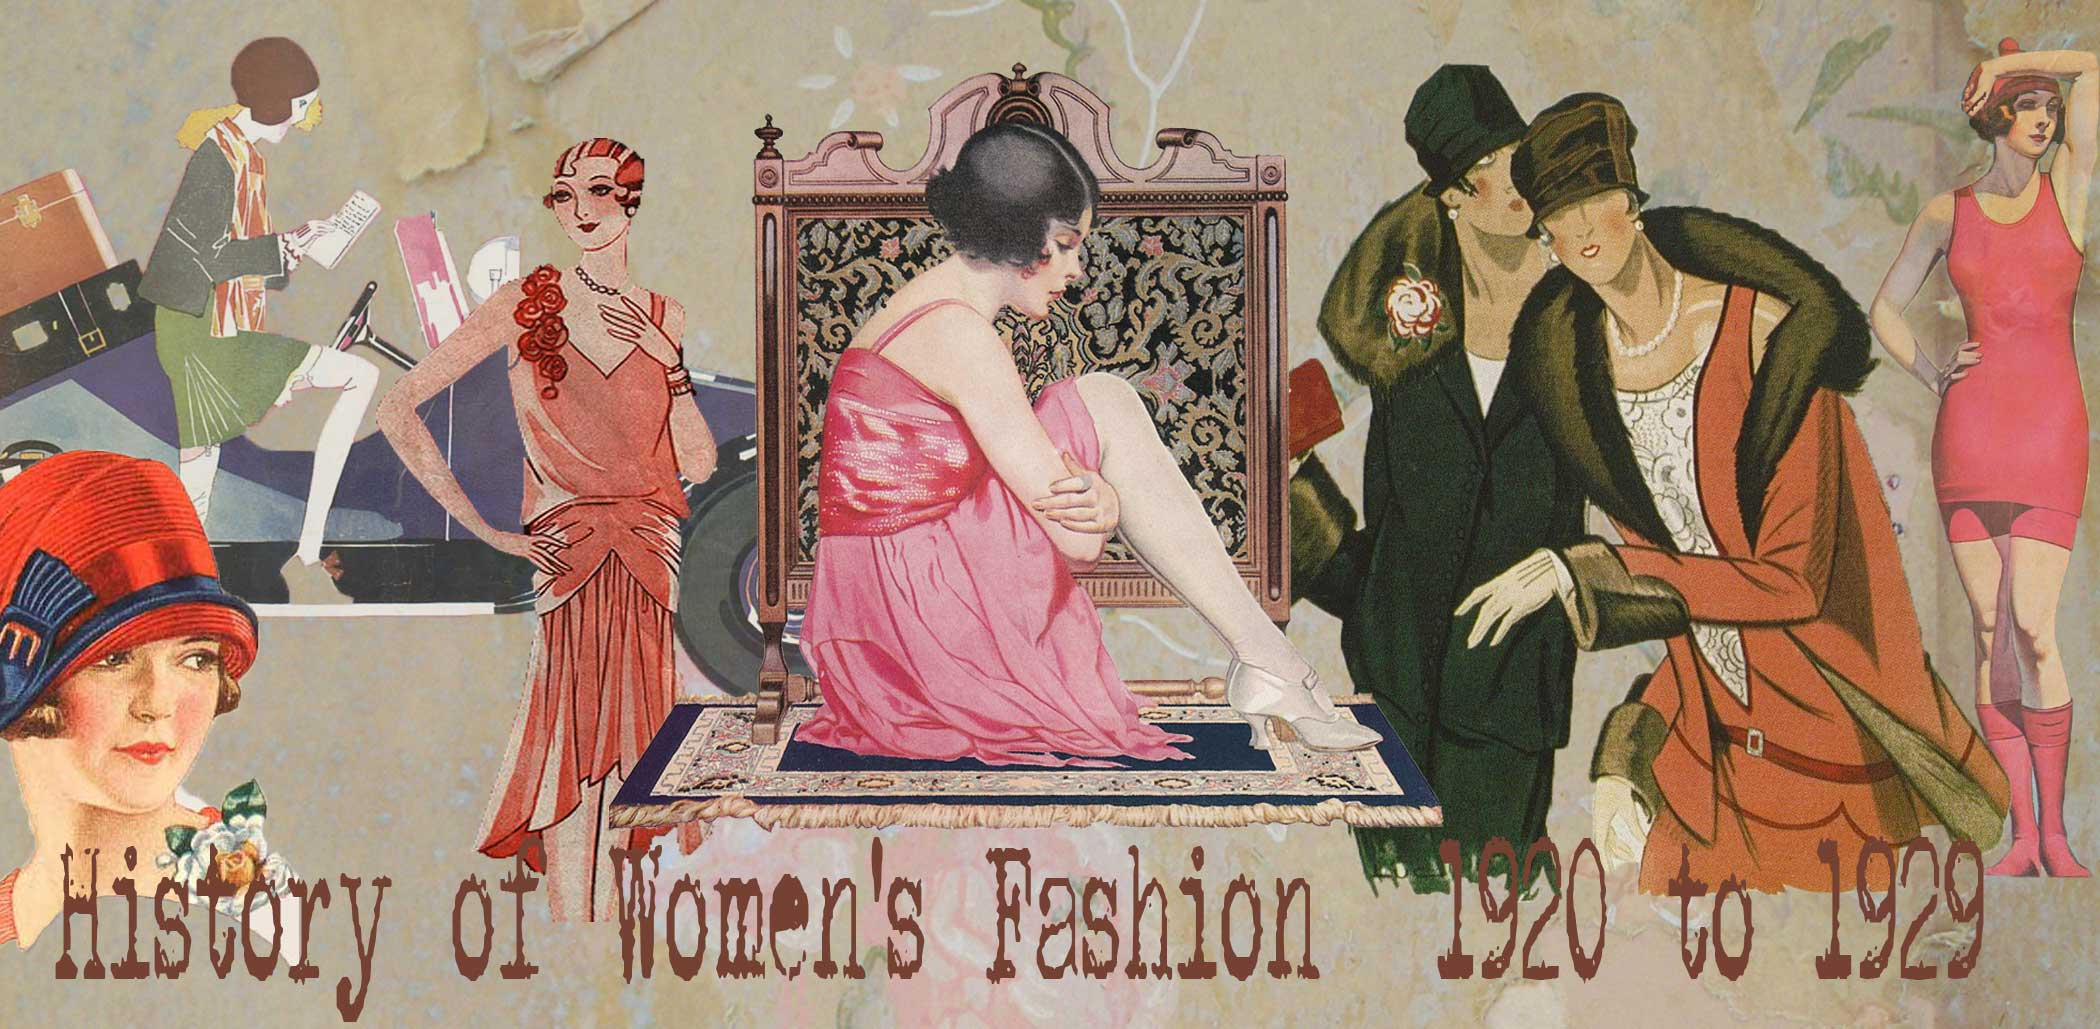 1920s Women Fashion History